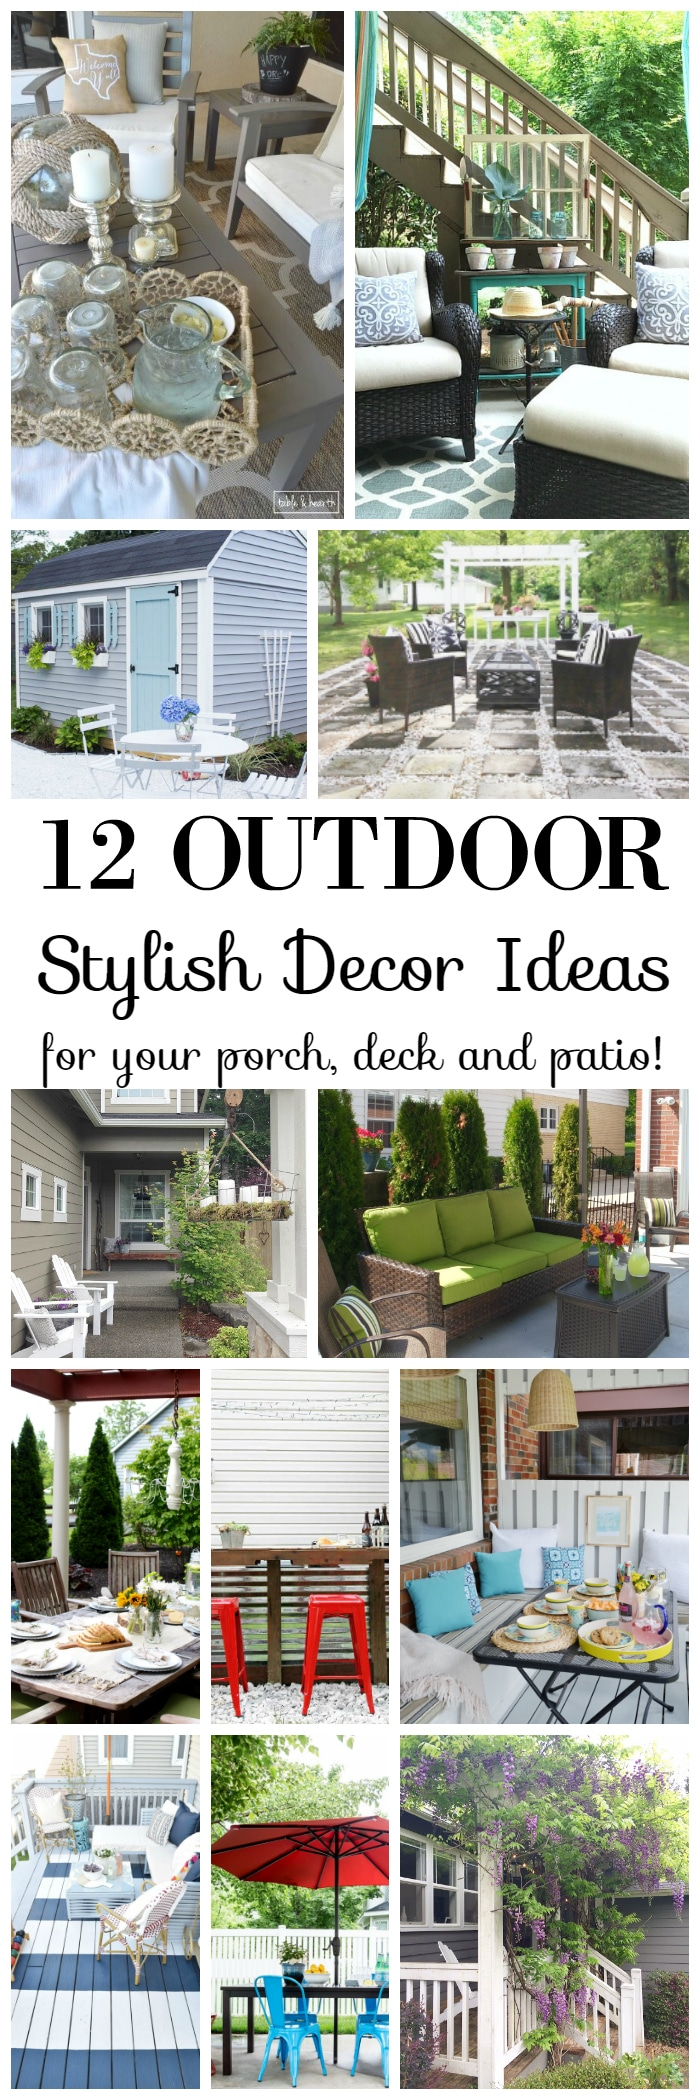 12 Great Ideas For A Modest Backyard: 12 Stylish Porch, Deck And Patio Decor Ideas